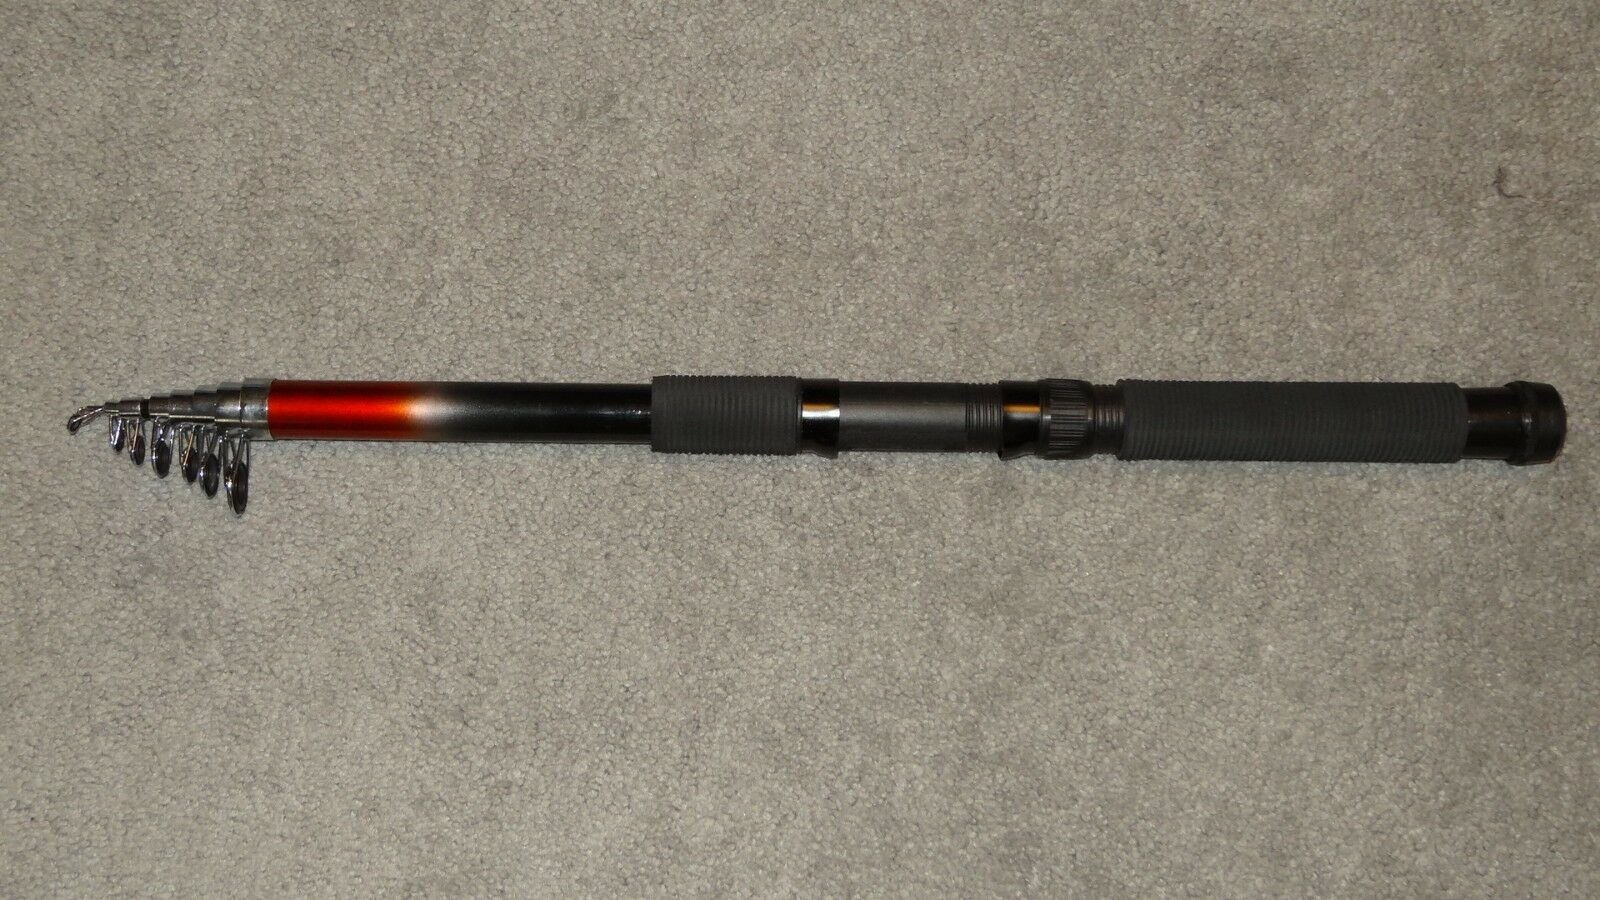 Daiwa Telescopic Rod 576M-360 8 section length   3.60 m or 11.8 ft New never used  the best selection of